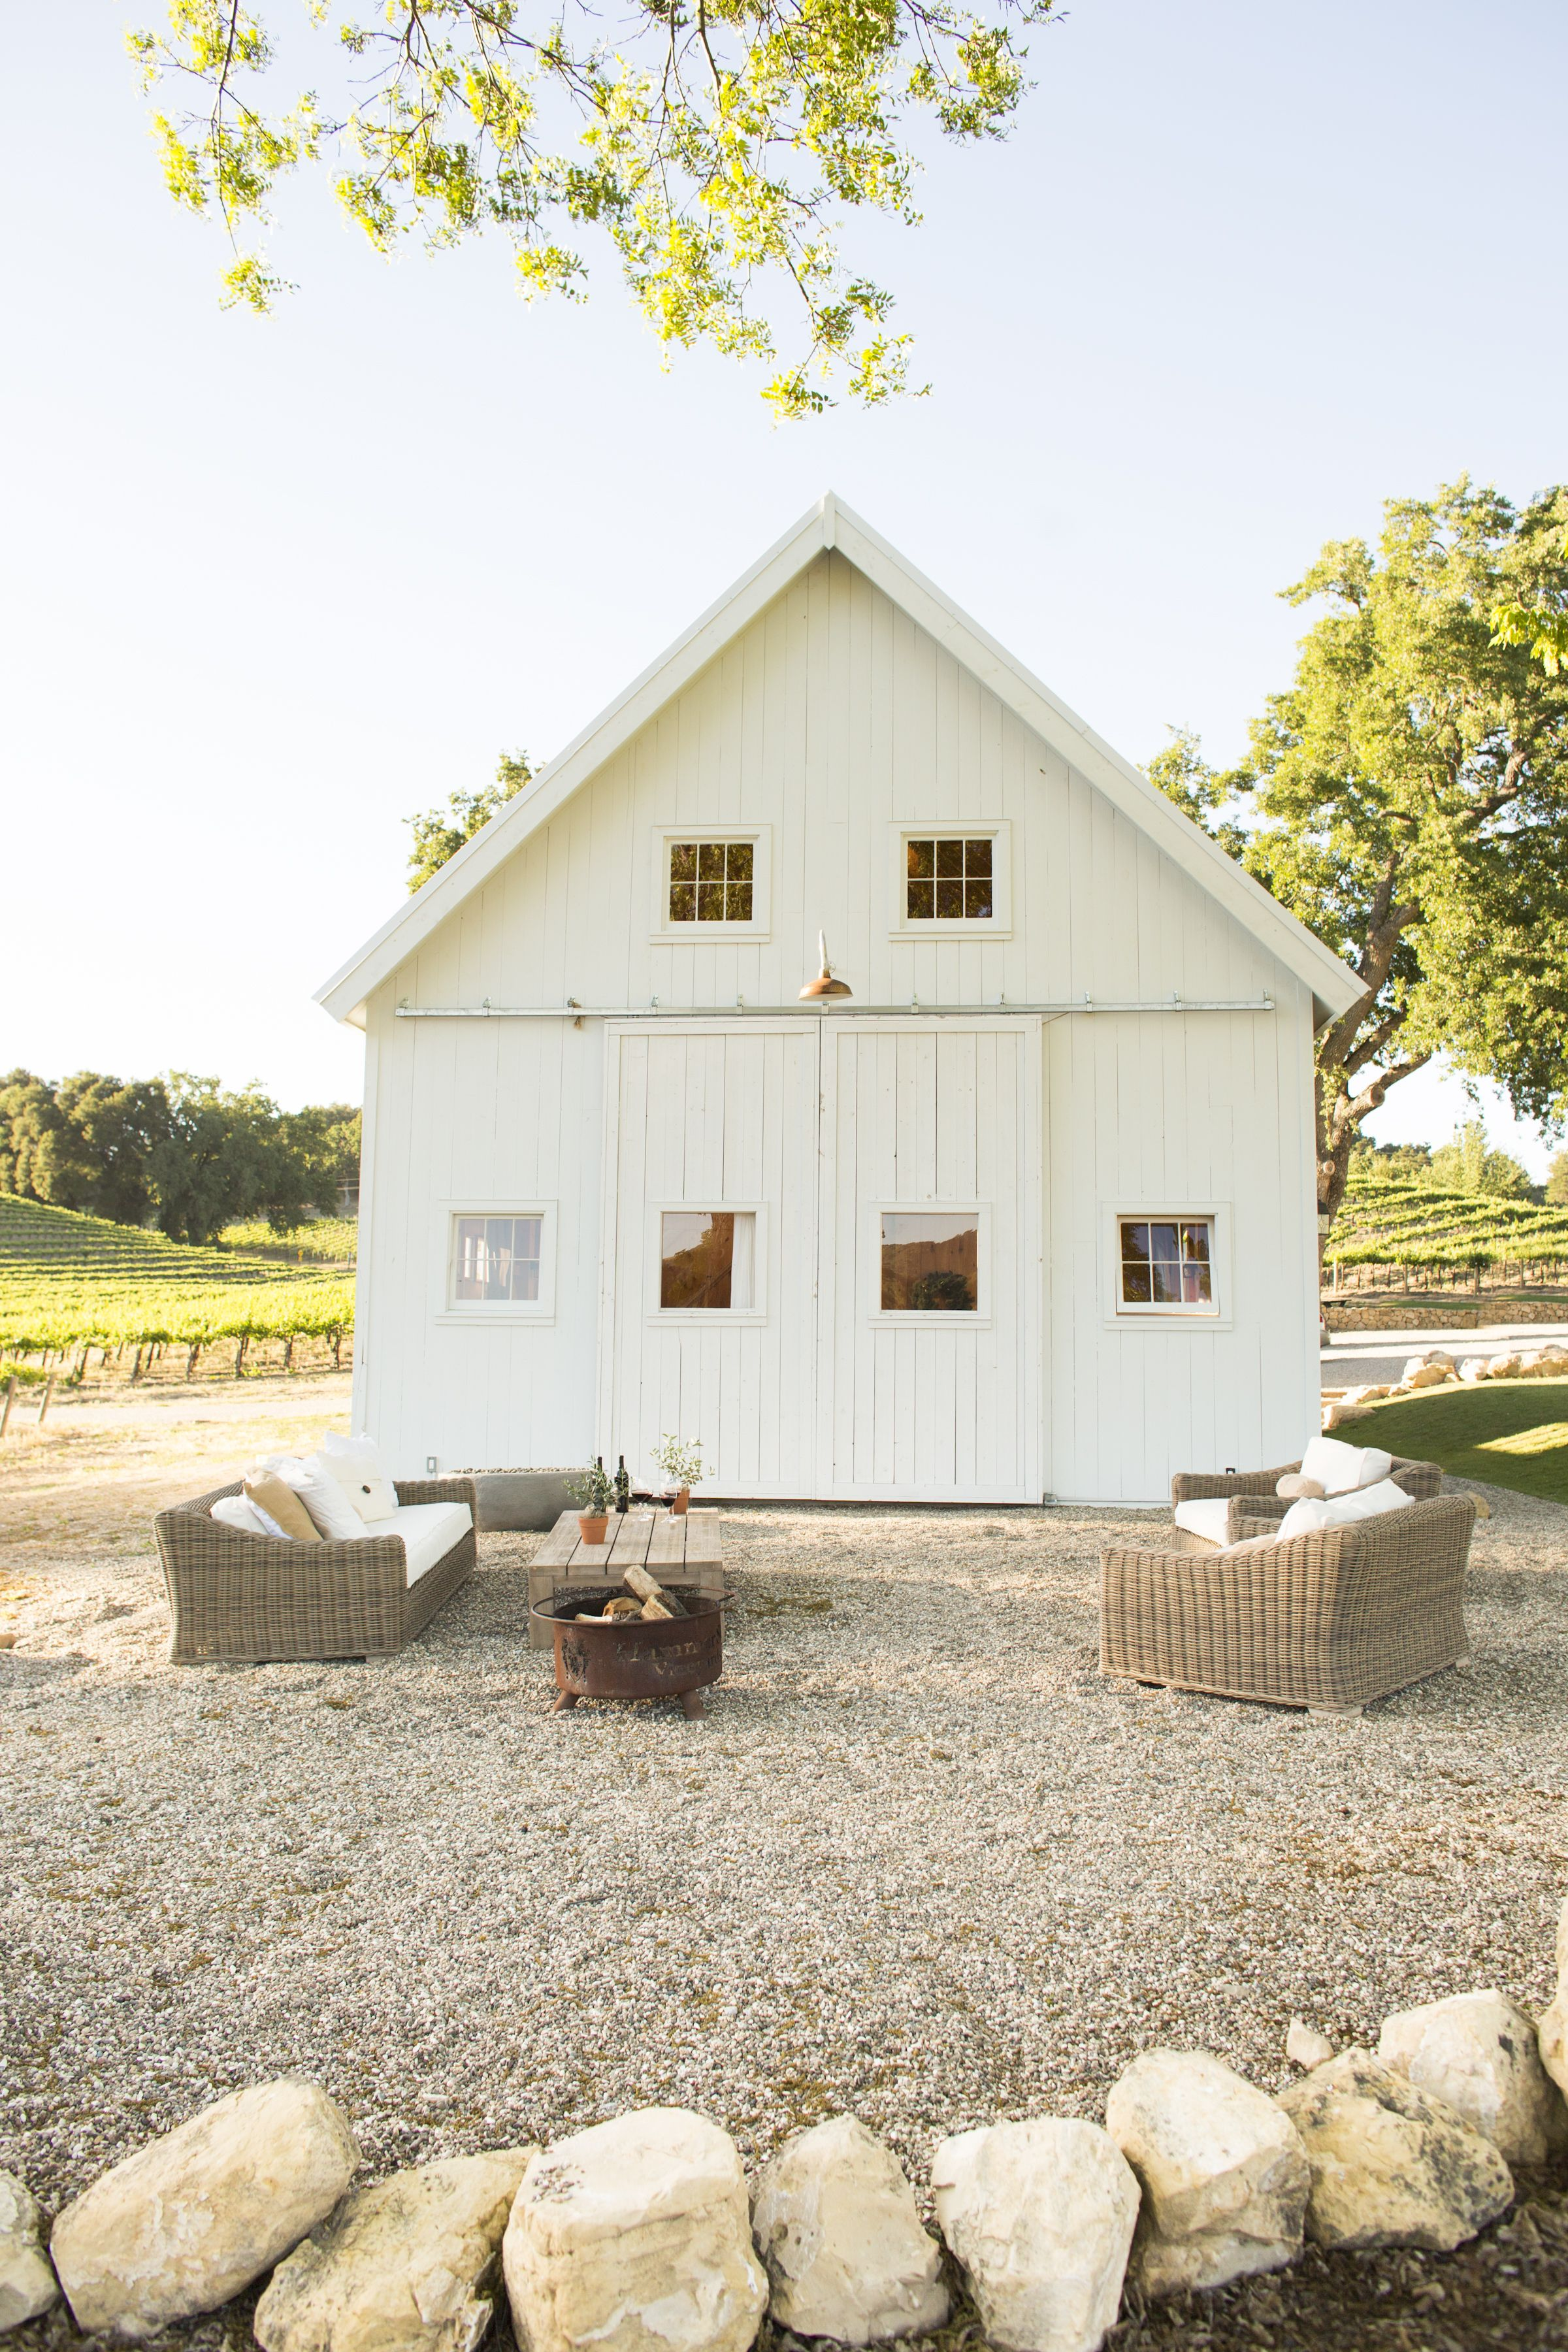 White barn at HammerSky photo by Allyson Magda